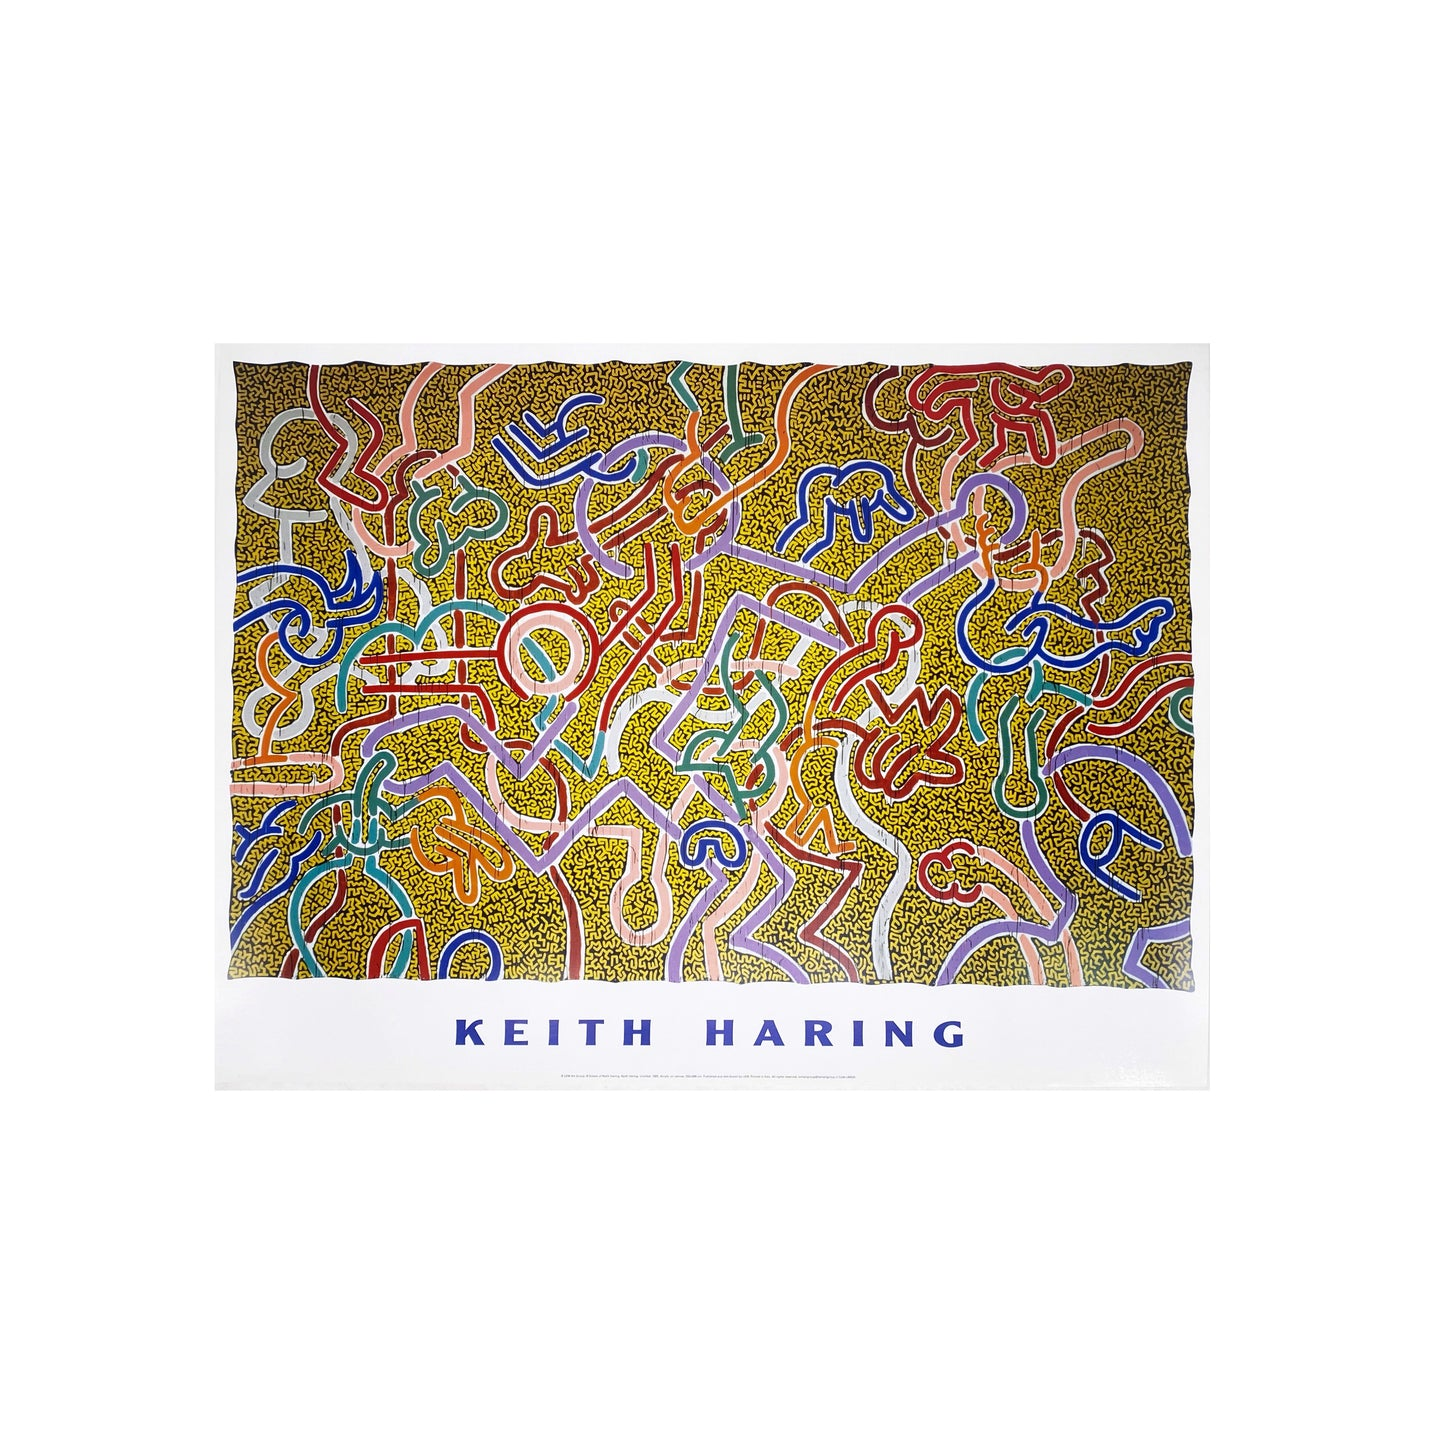 KEITH HARING - UNTITLED 1985 FINE ART PRINT-BASEMENT SIX